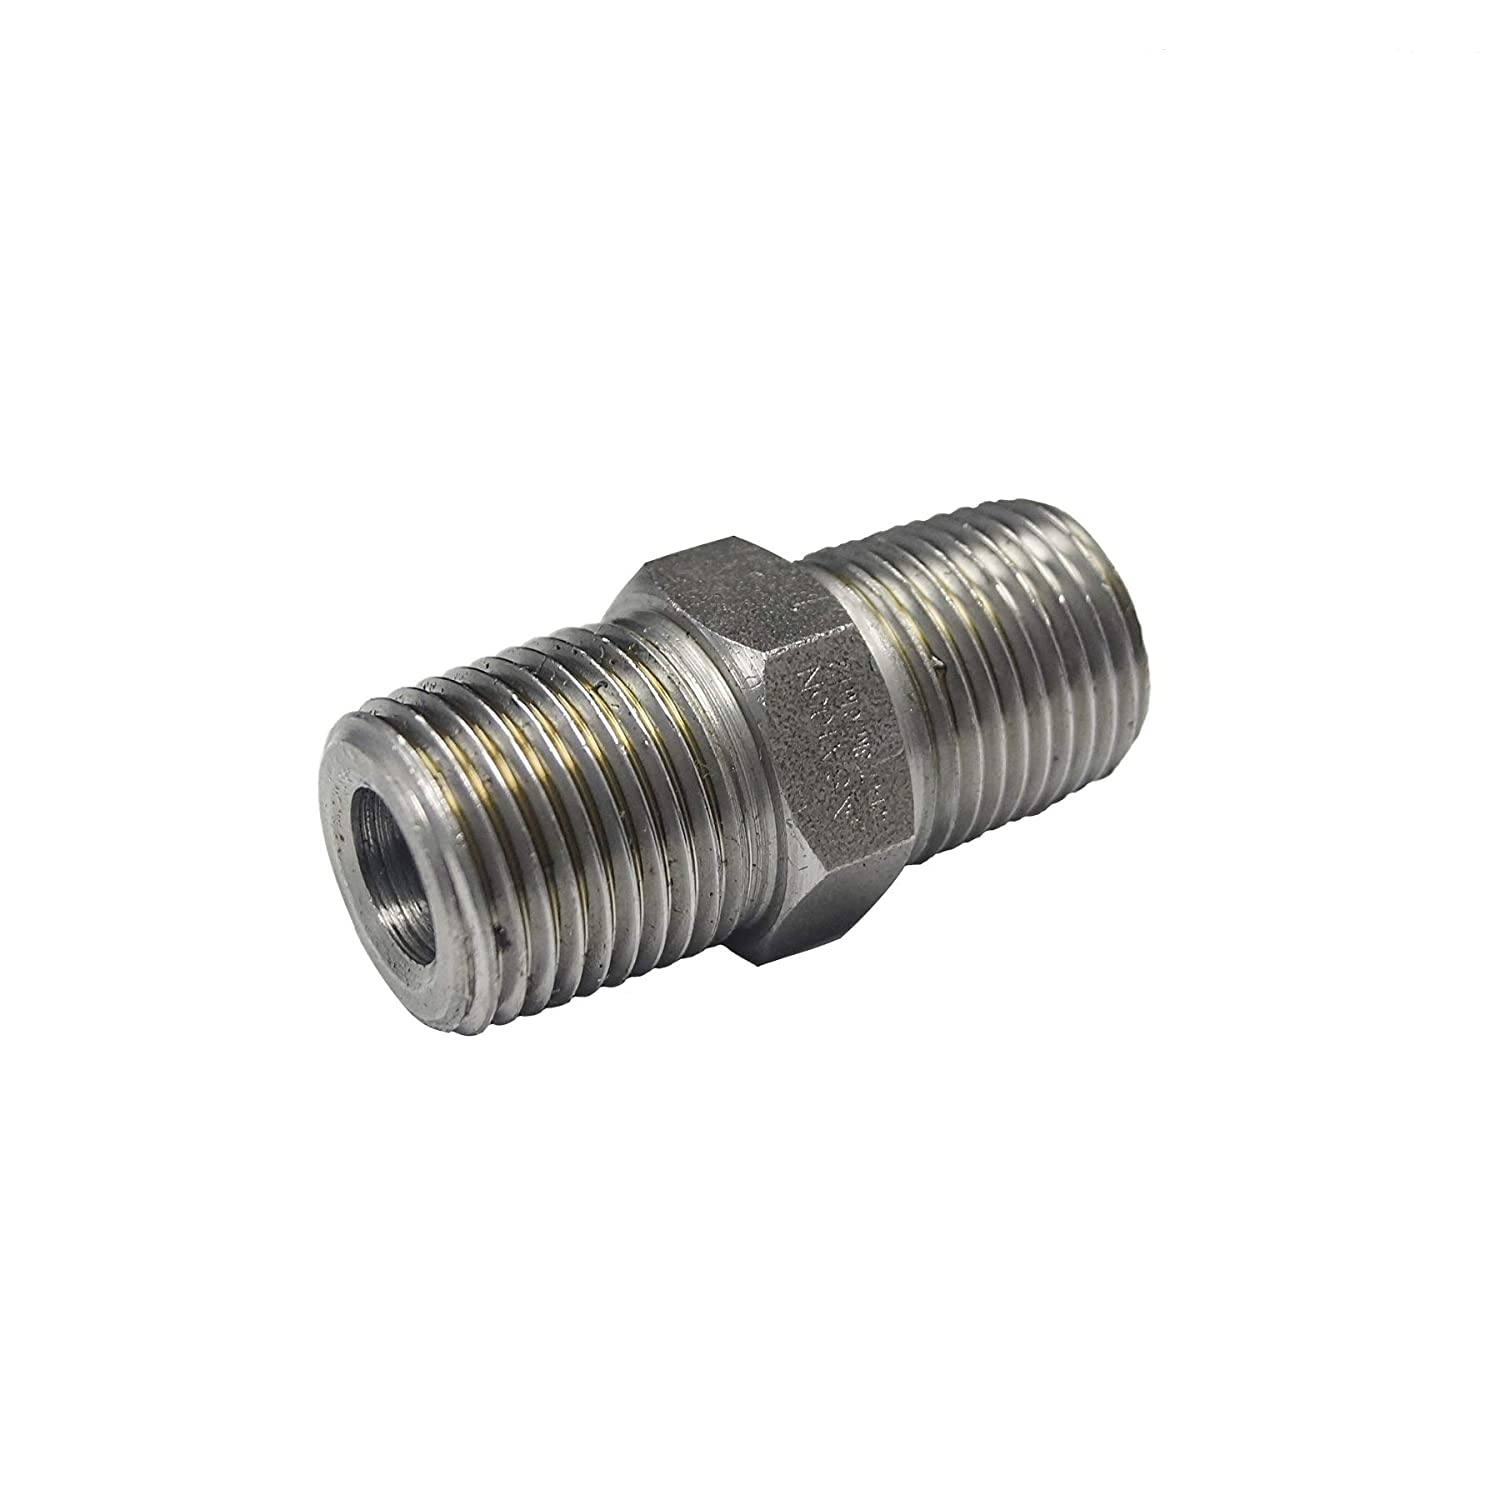 Carbon Steel A105 Forged Pipe Fitting, Hex Nipple, 1/2